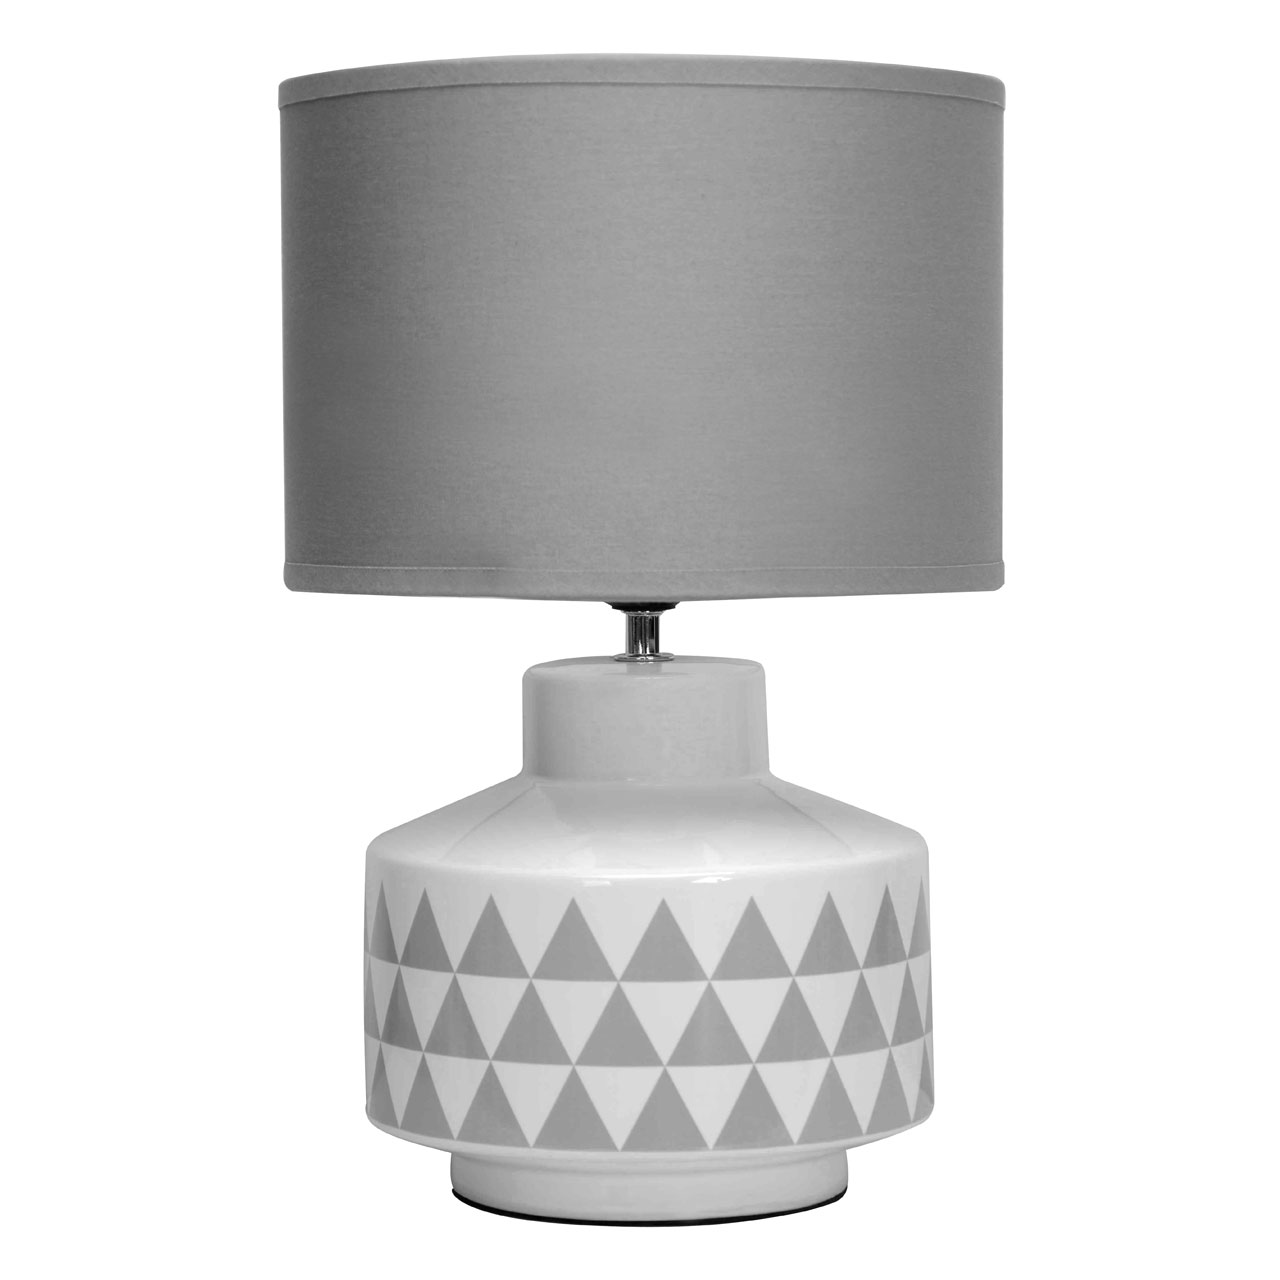 Wylie 2020 Table Lamp